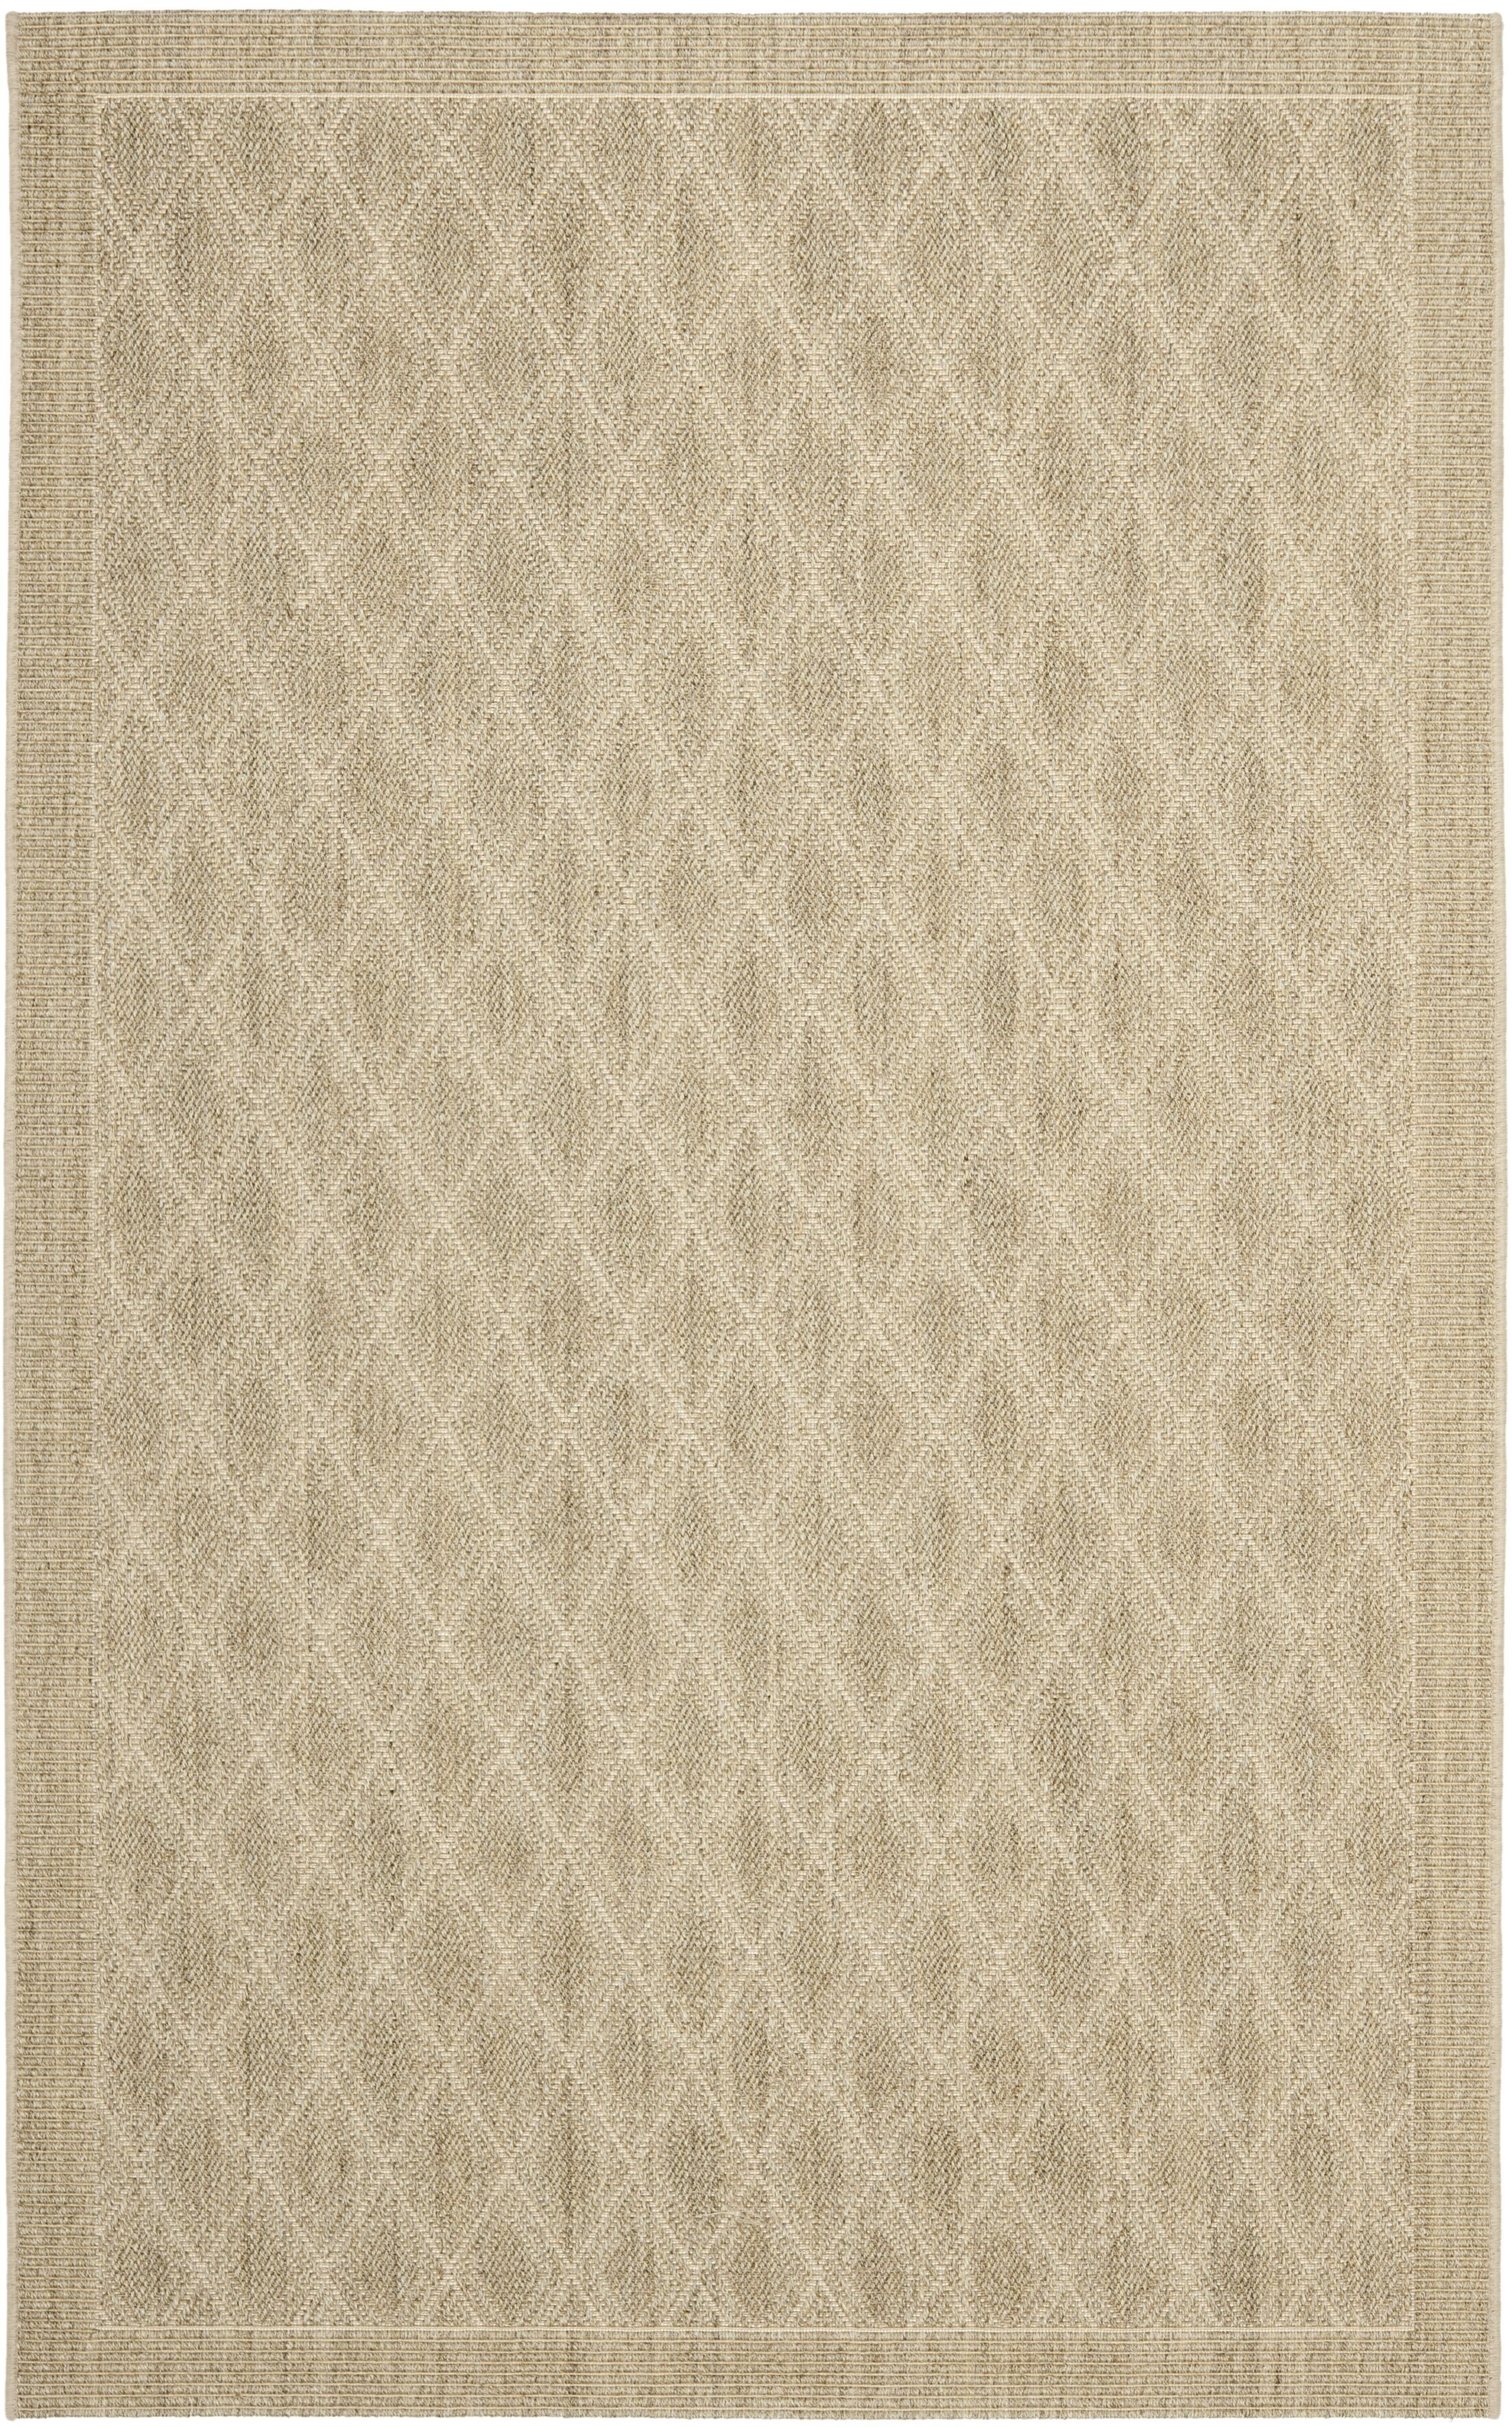 Palm S And Area Rug Rug Size: Rectangle 5' x 8'